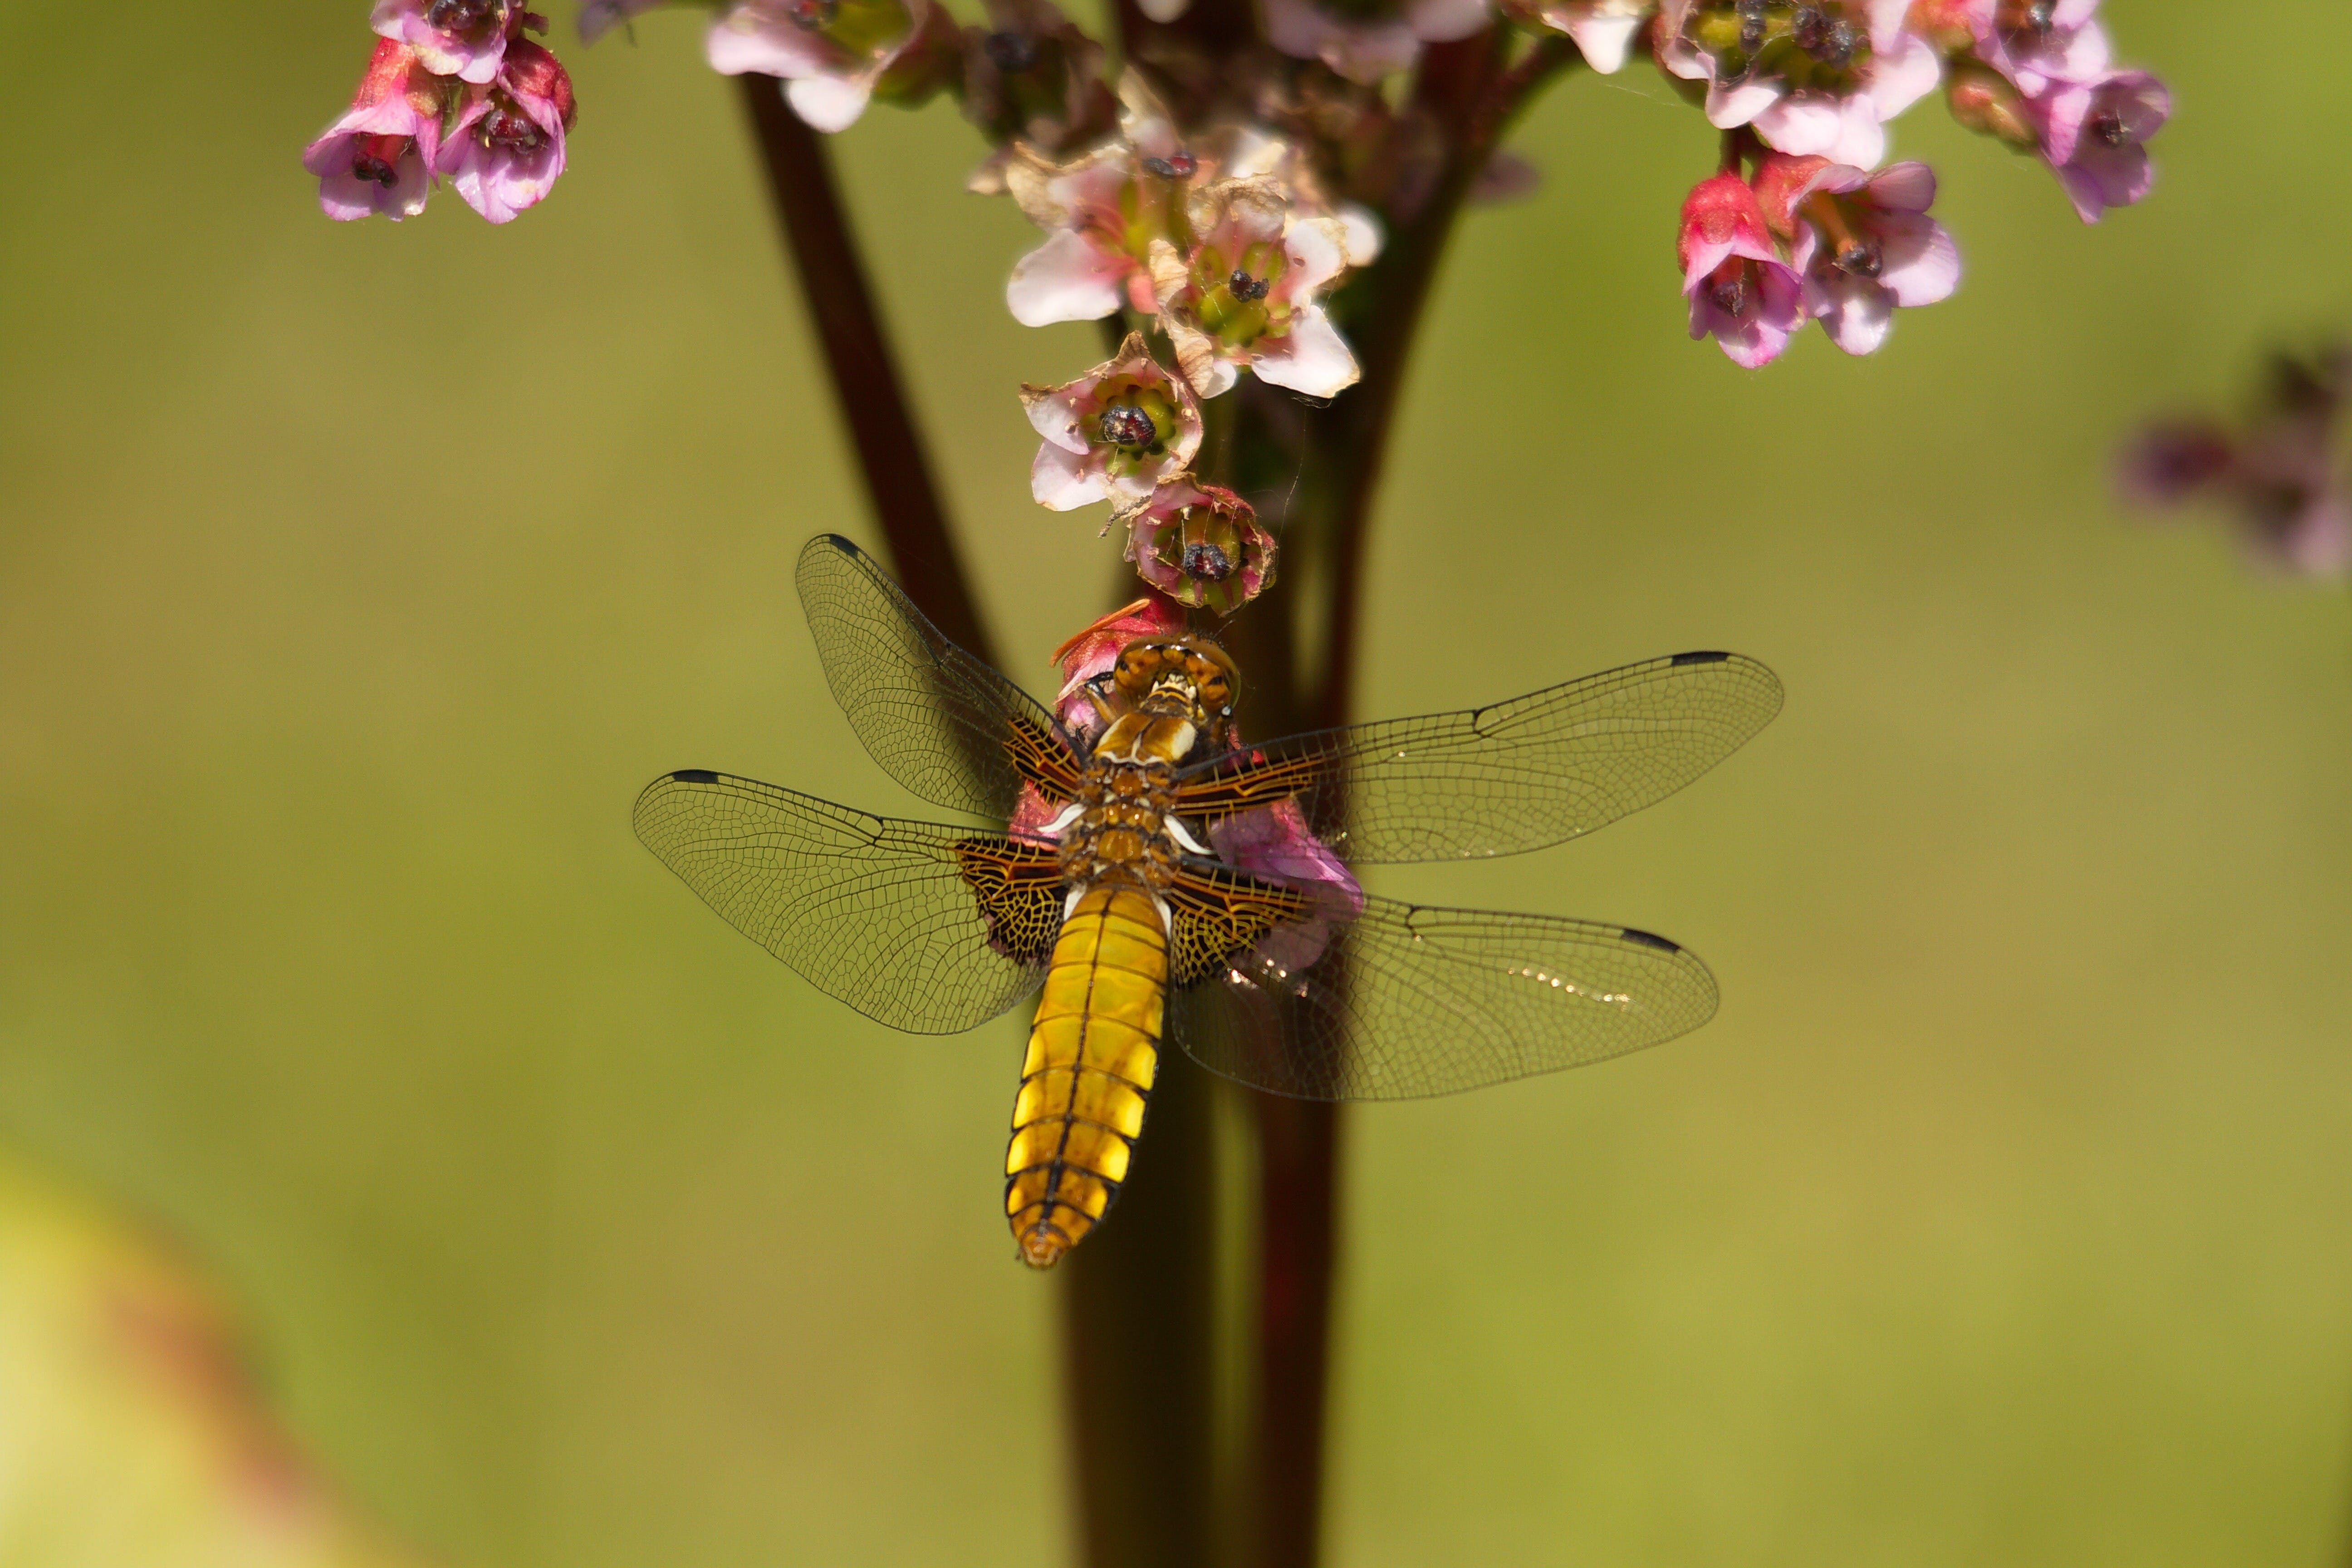 Brown Dragonfly Near Flower